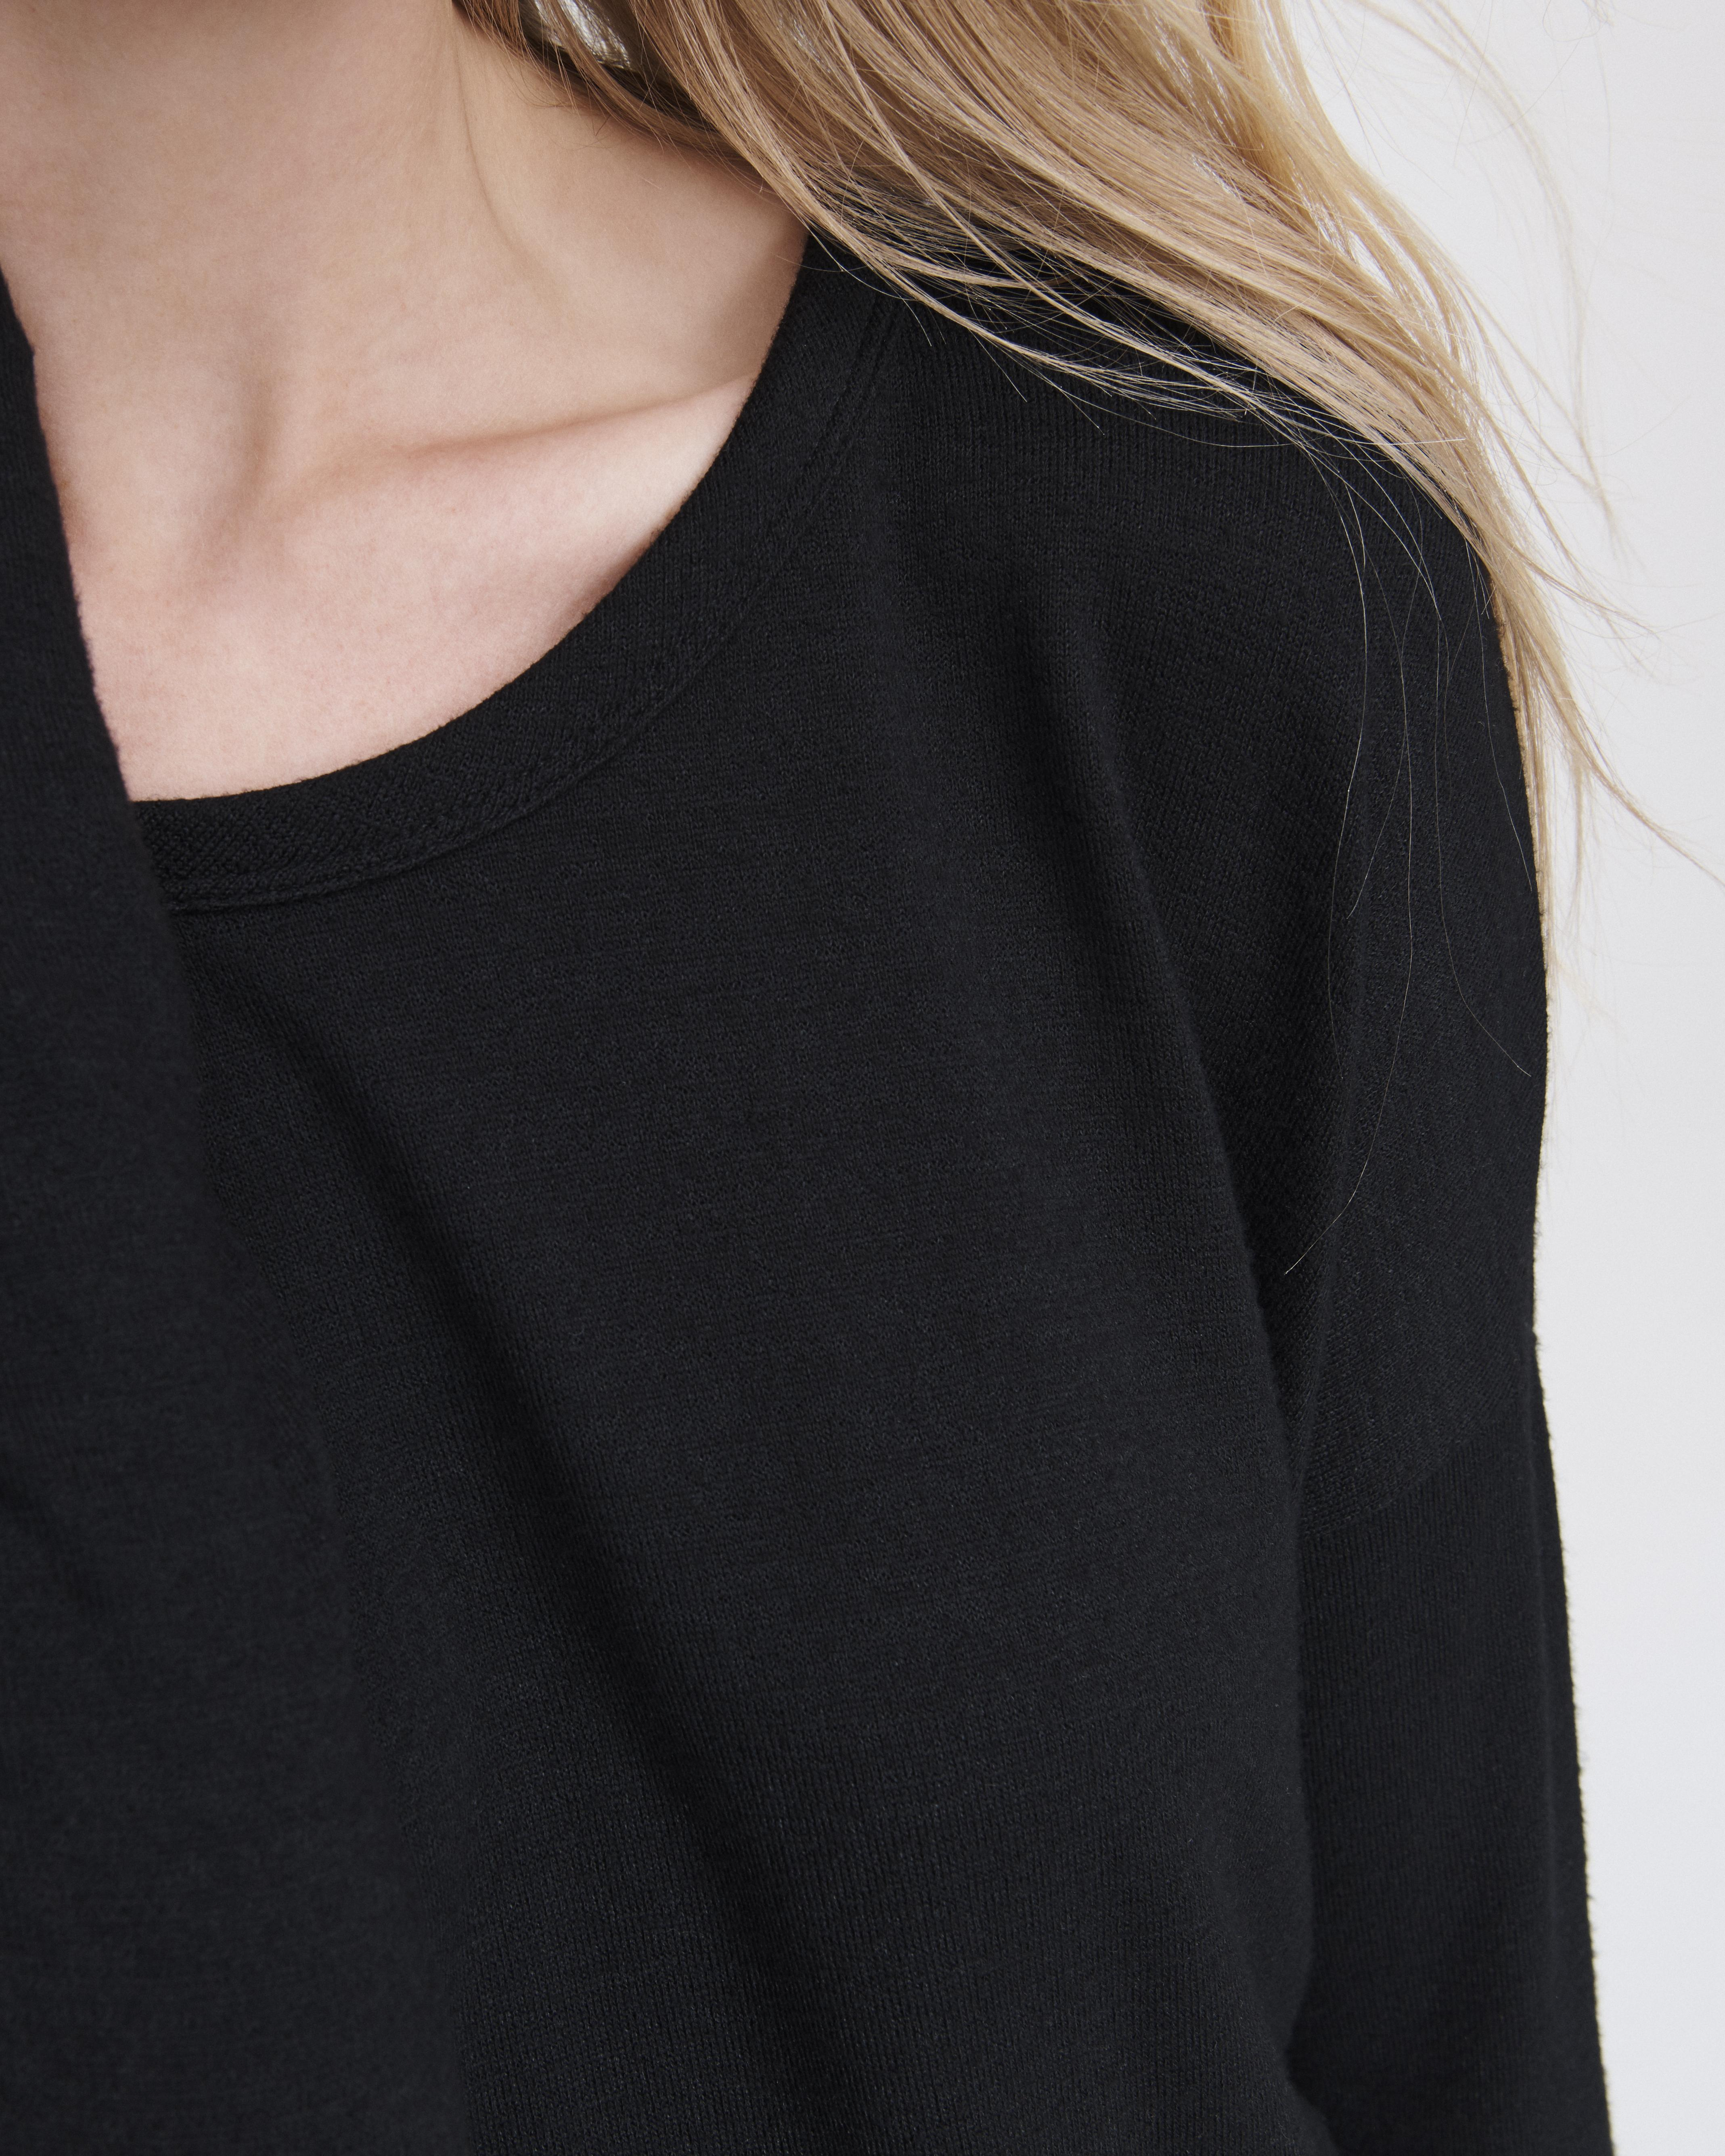 The knit tee 4